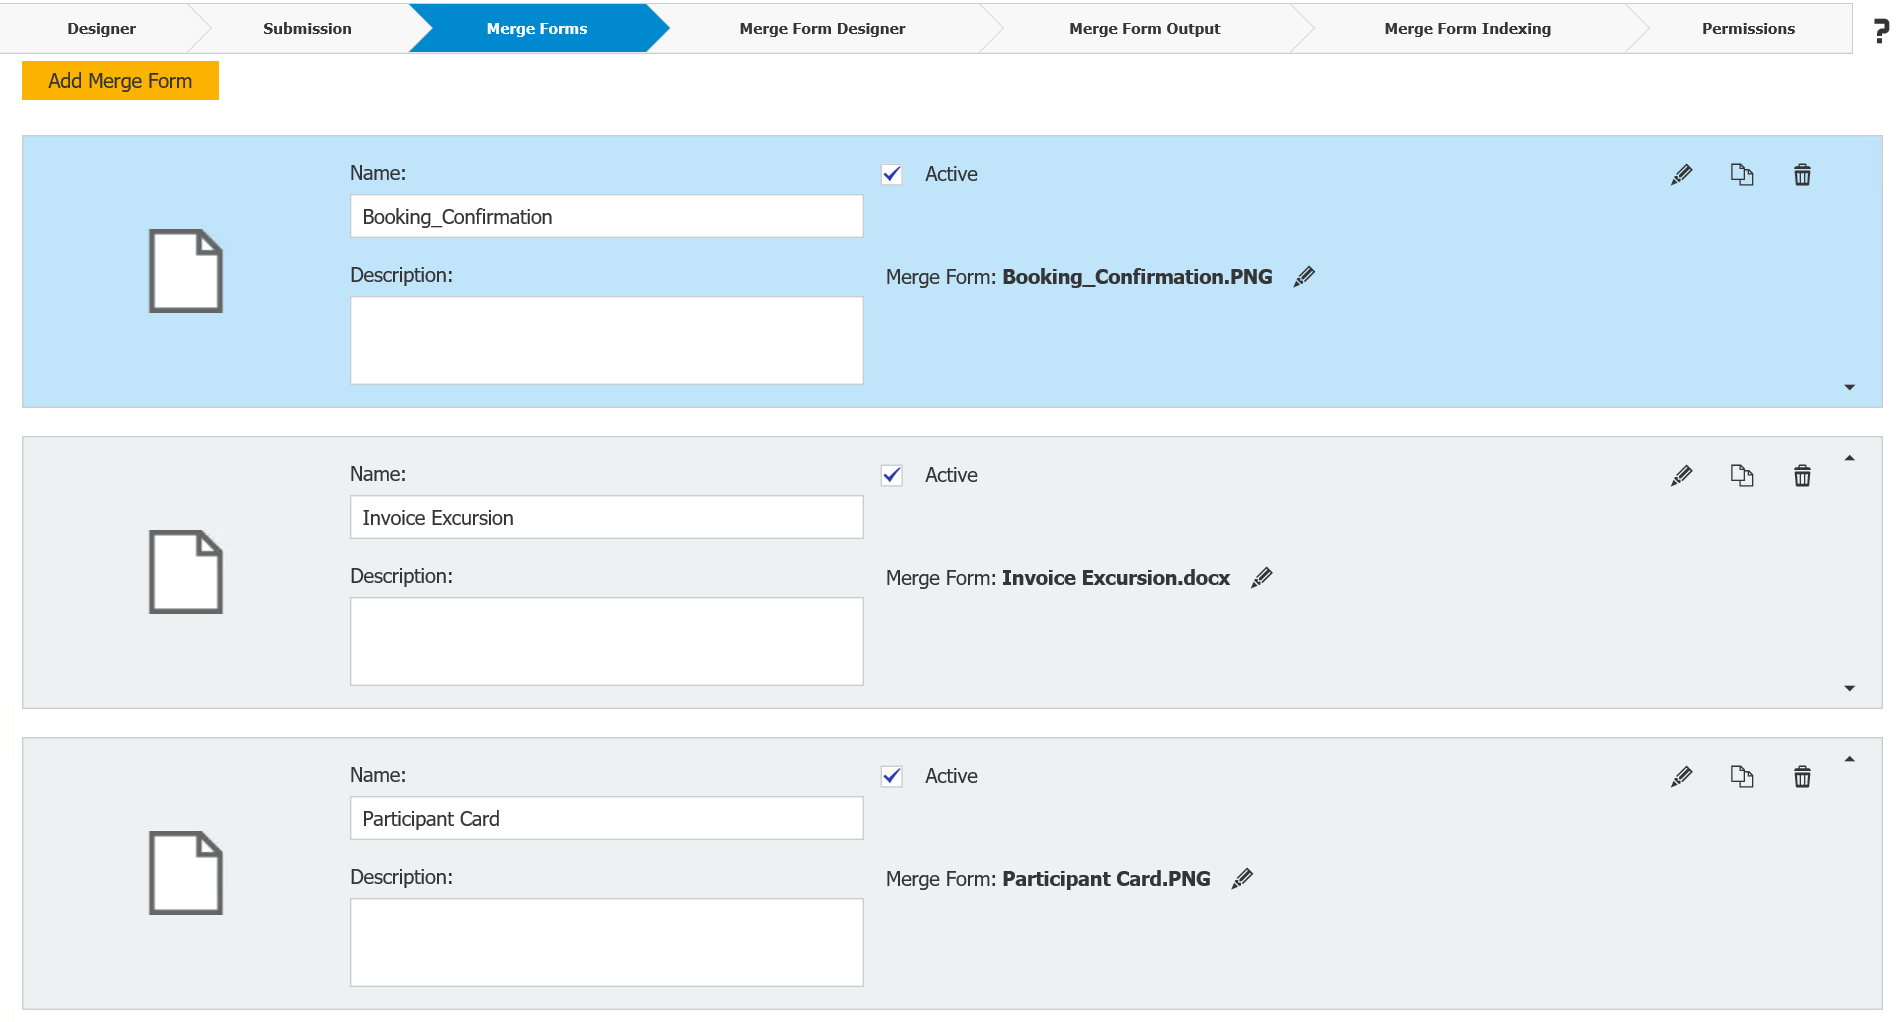 Add more than one merge forms so that they can be filled out with one single web form